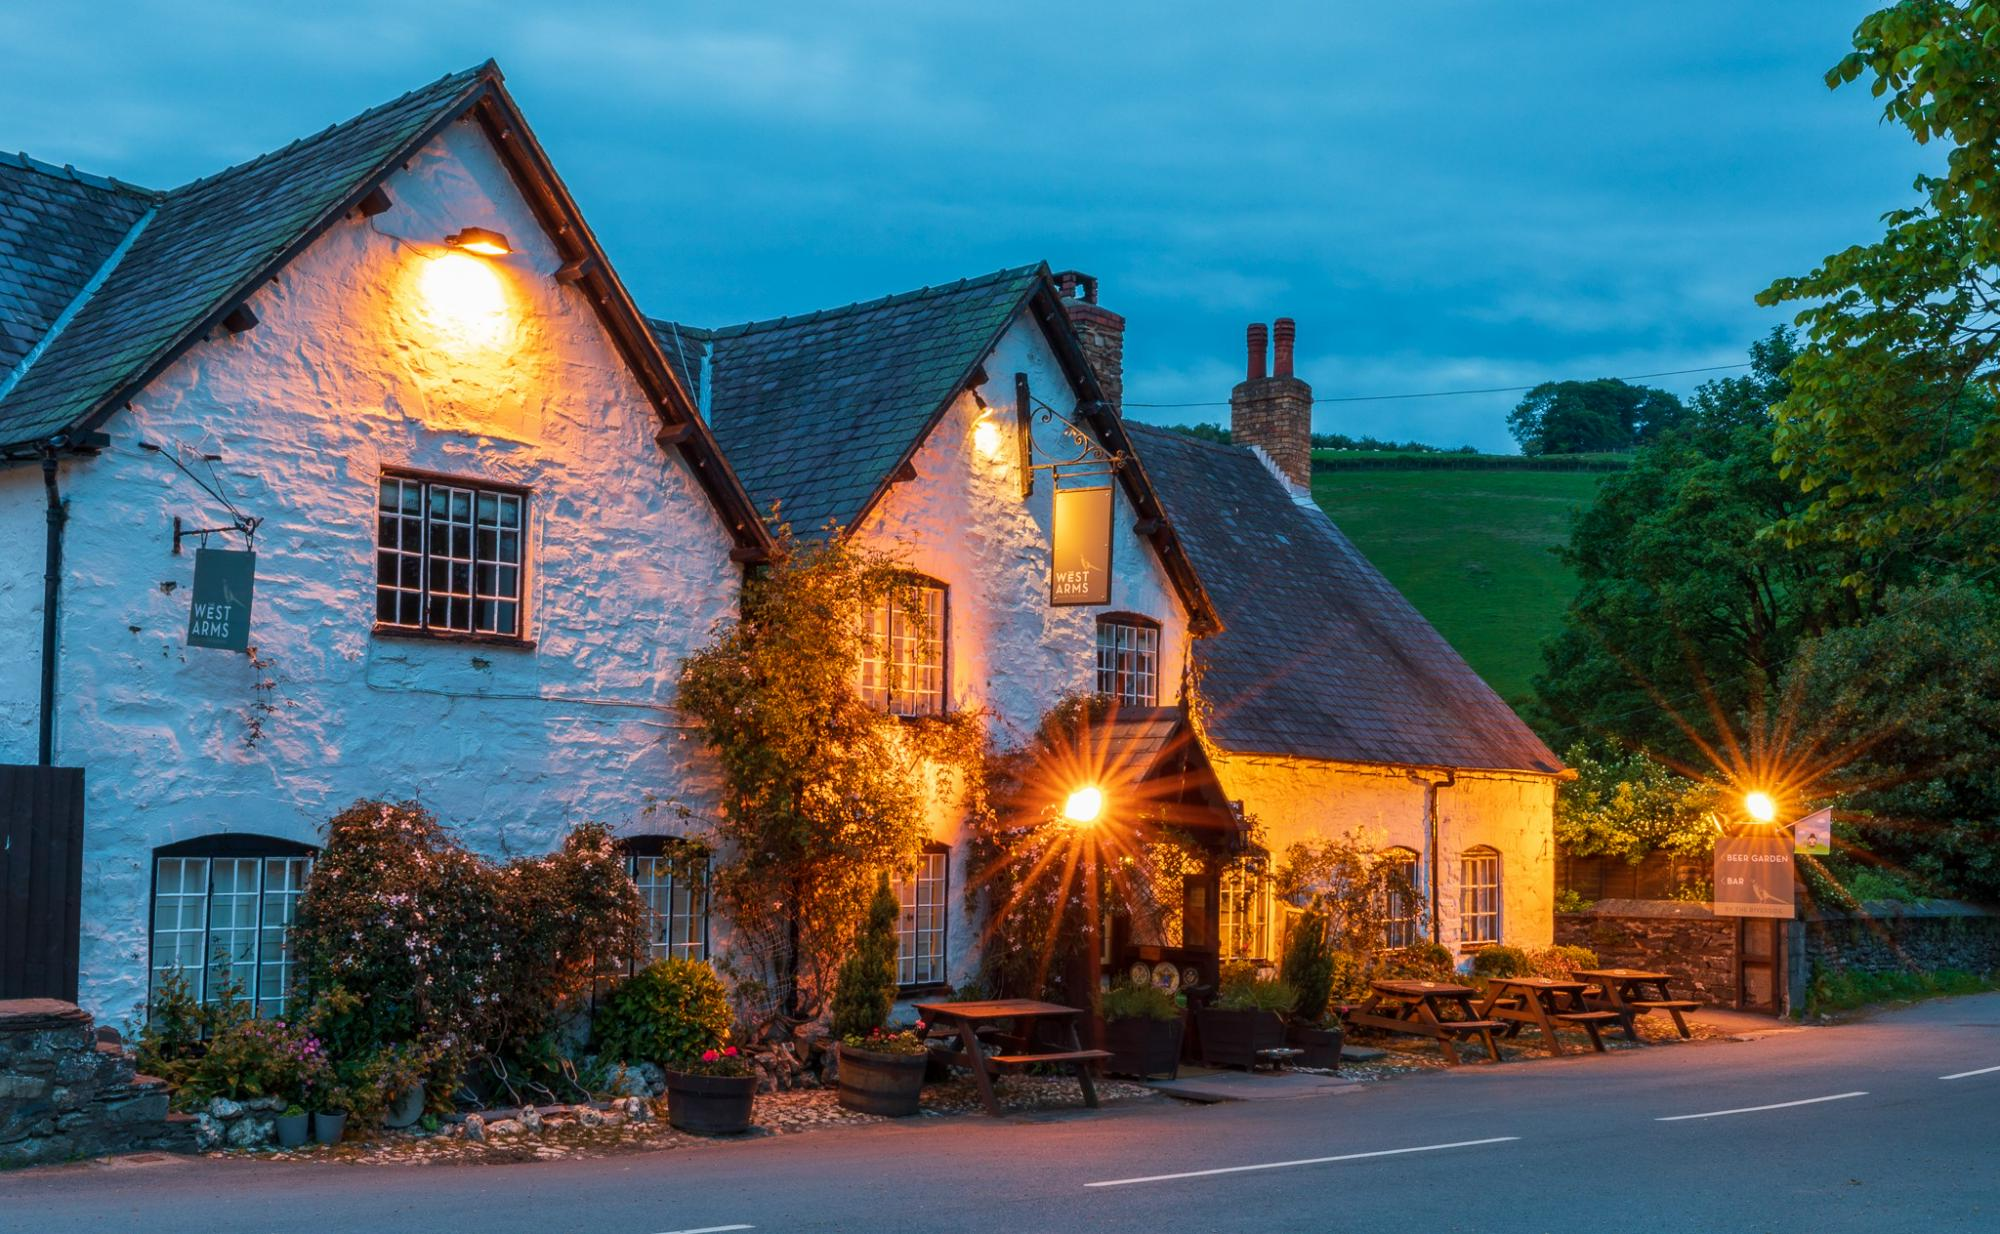 Hotels in North Wales holidays at Cool Places